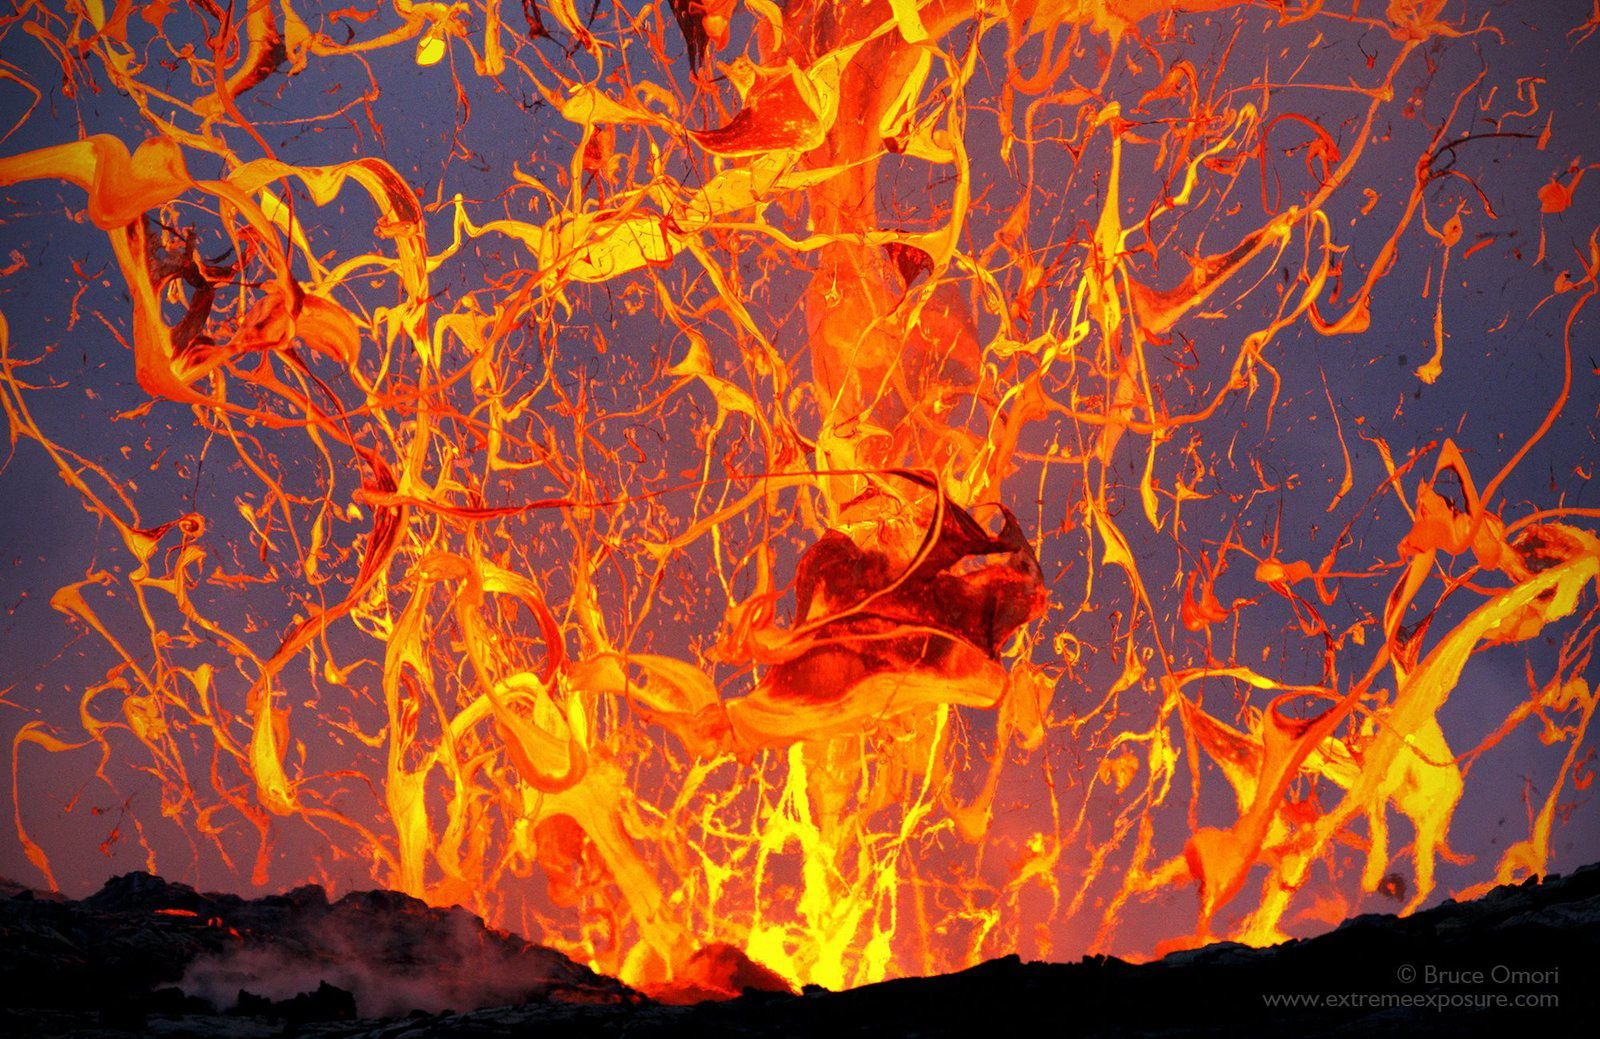 photo Bruce Omori / Extreme exposure